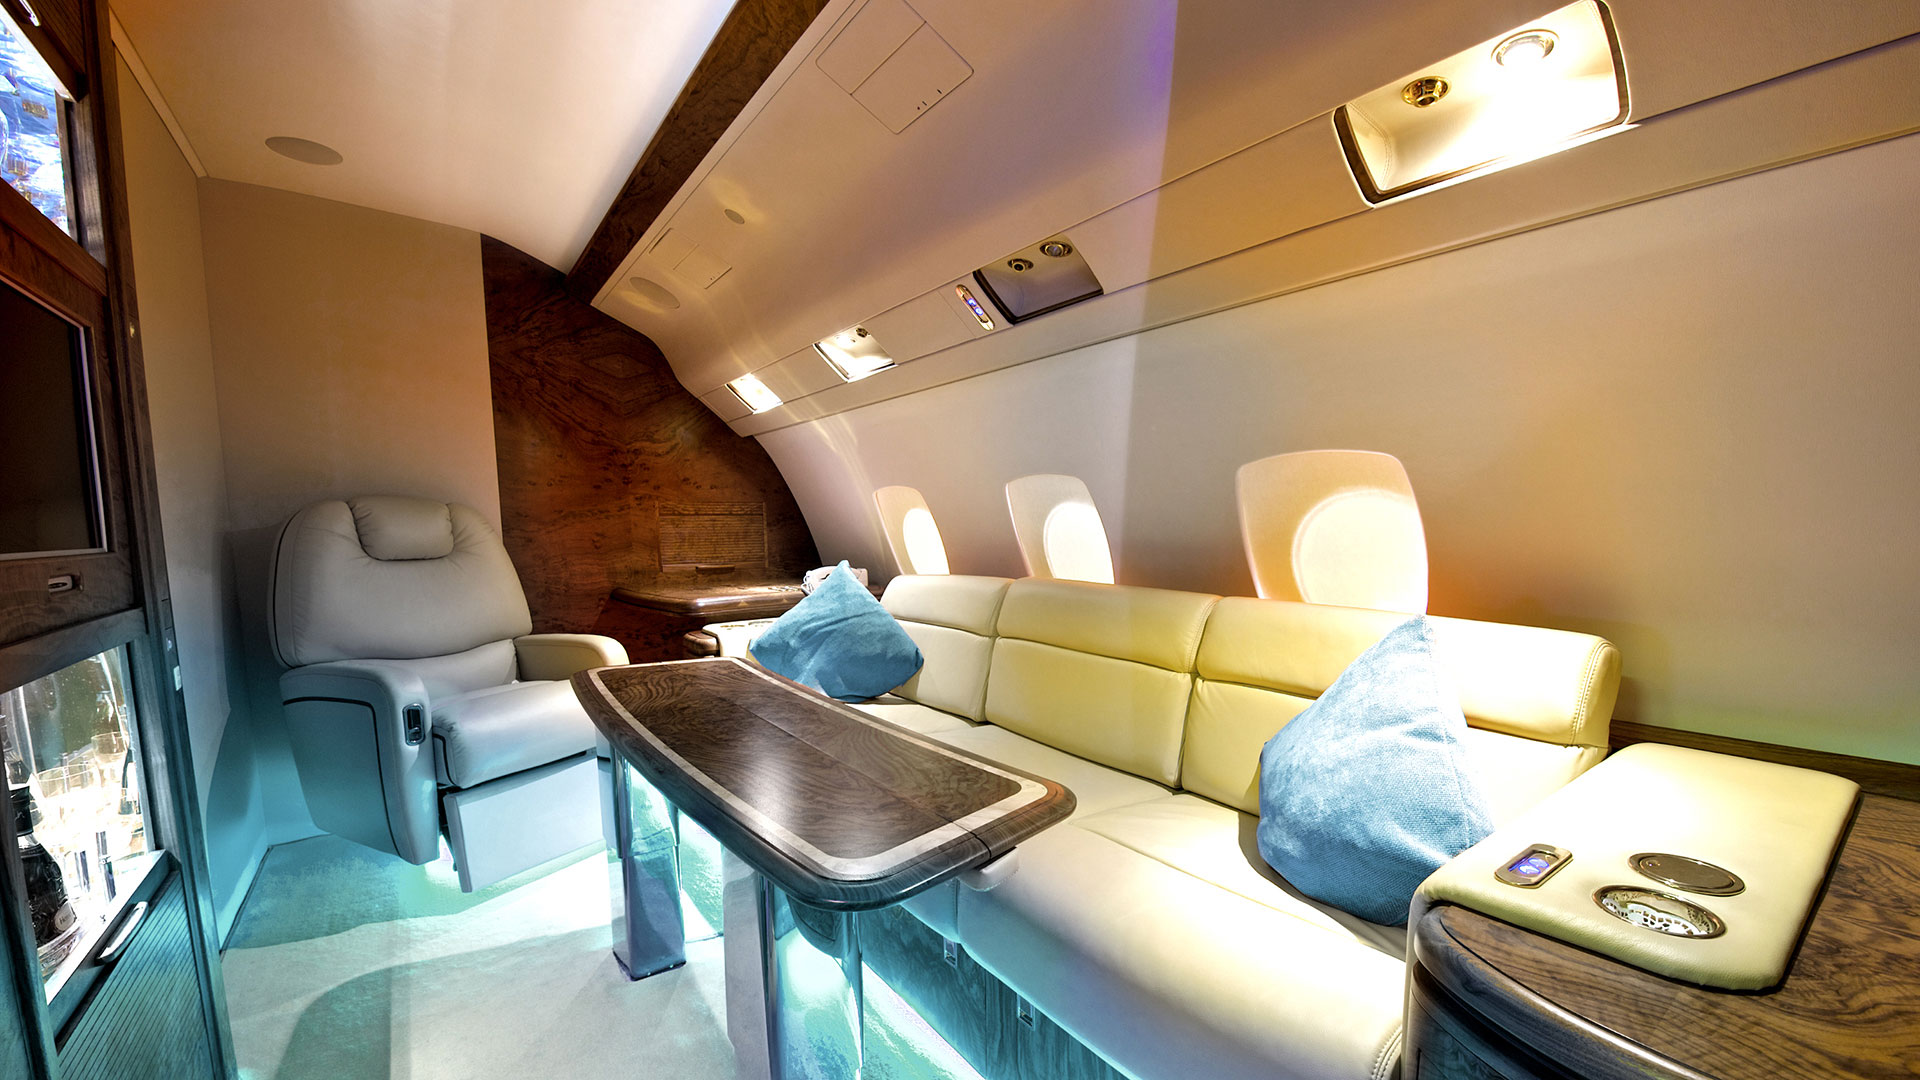 VVIP interior business jet